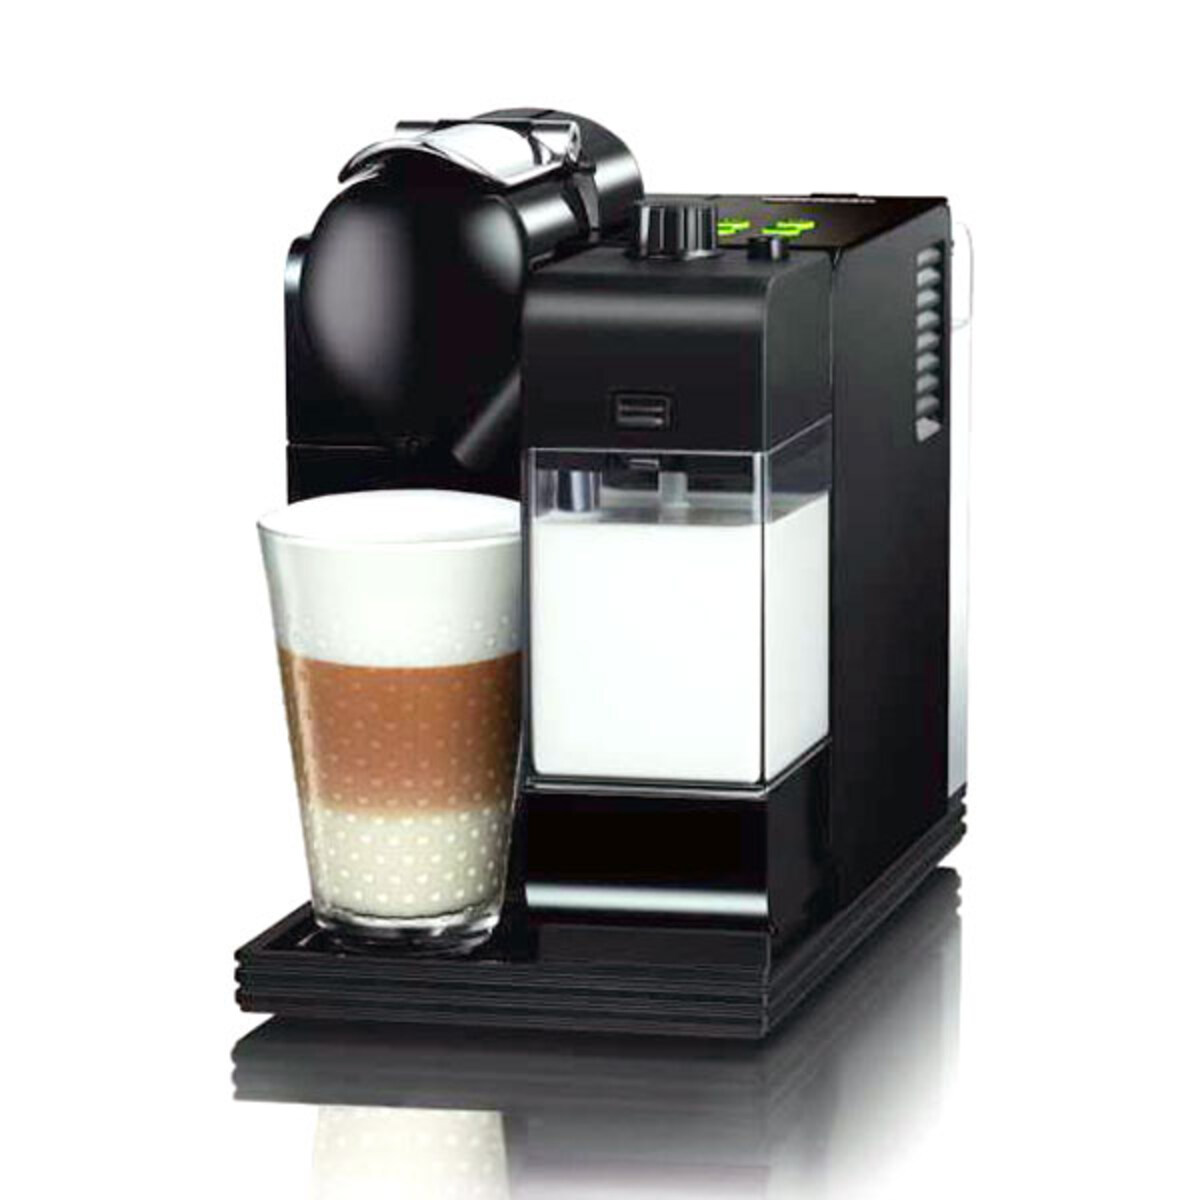 Nespresso Latissima Plus Black